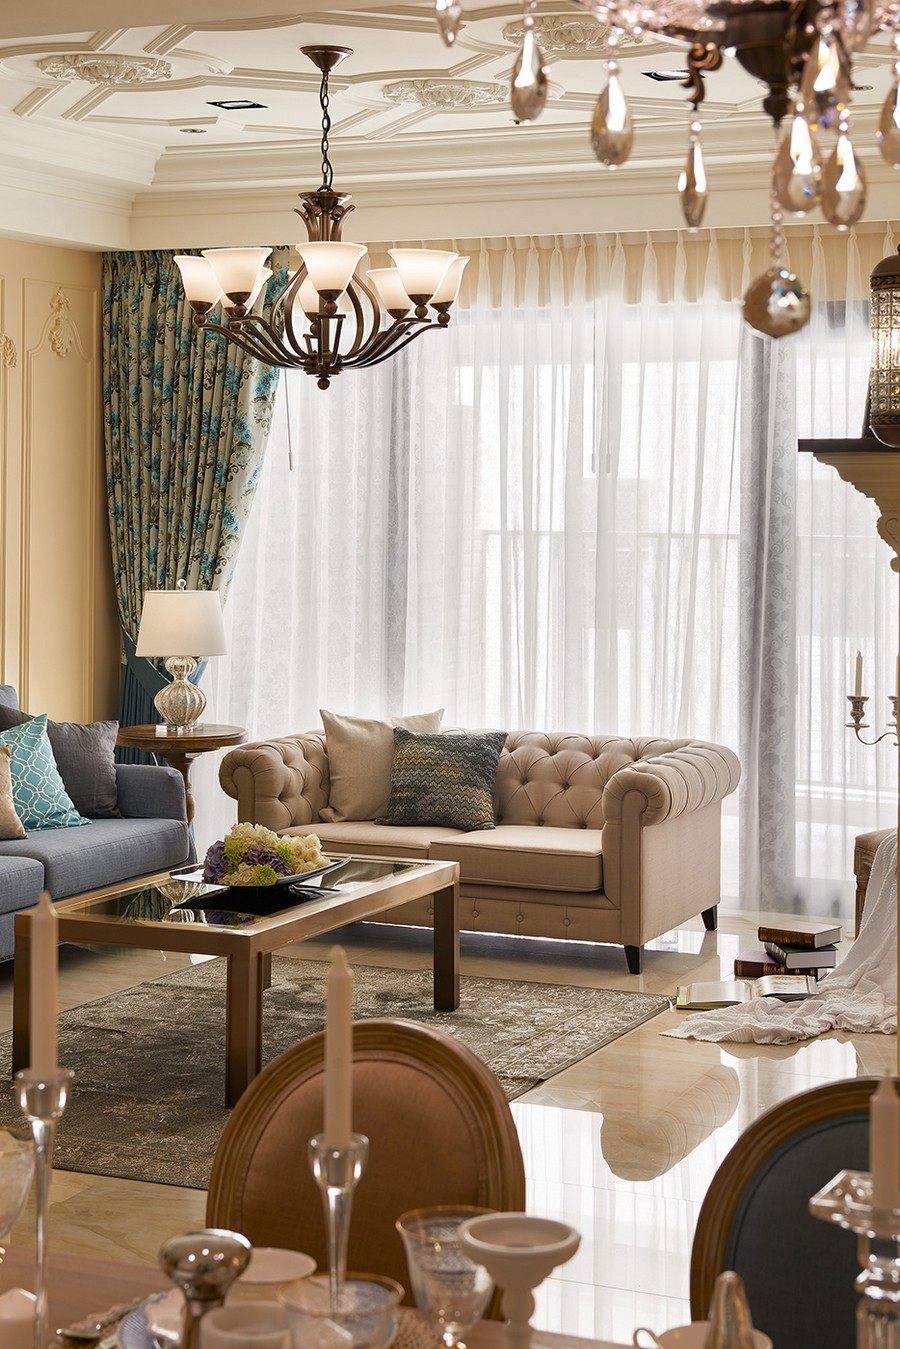 0-neo-classical-style-interior-neutral-beige-blue-Tuscan-colors-living-room-wall-moldings-ceiling-medallions-contemporary-furniture-chester-sofa-coffee-table-floral-curtains-chandelier-tiles